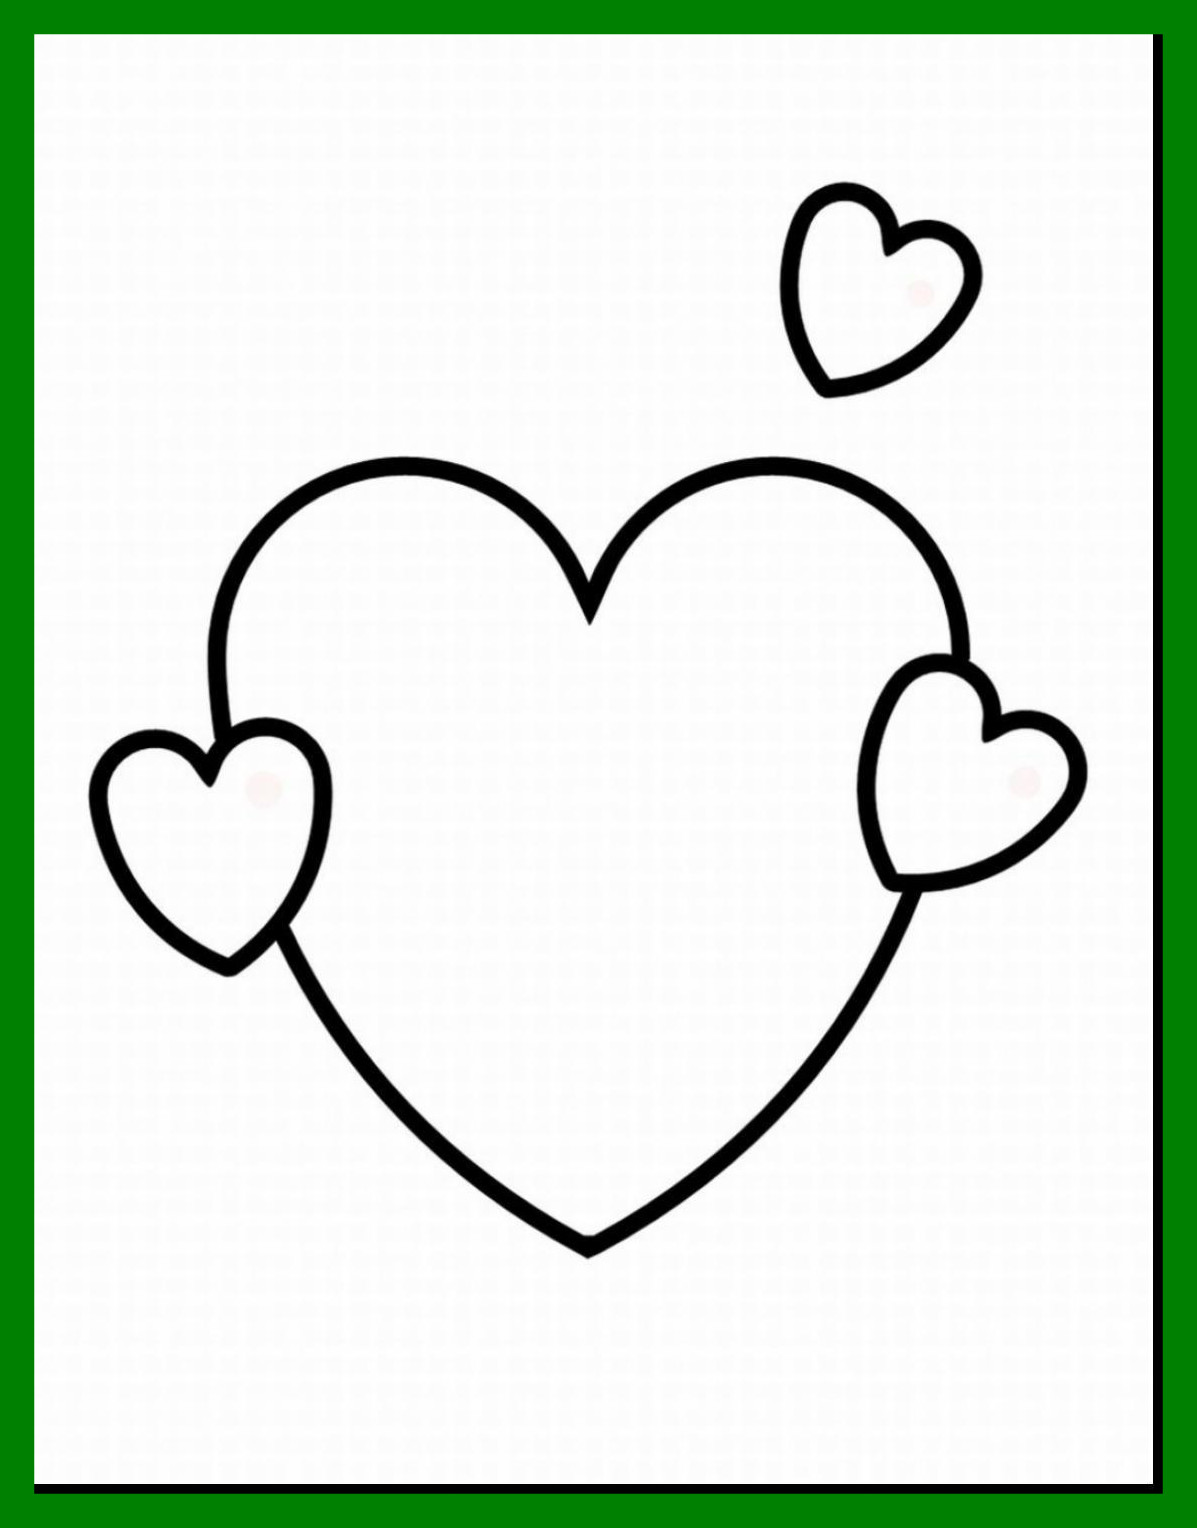 1197x1528 Incredible Swan Heart In Love Coloring Page And Roses Sheets